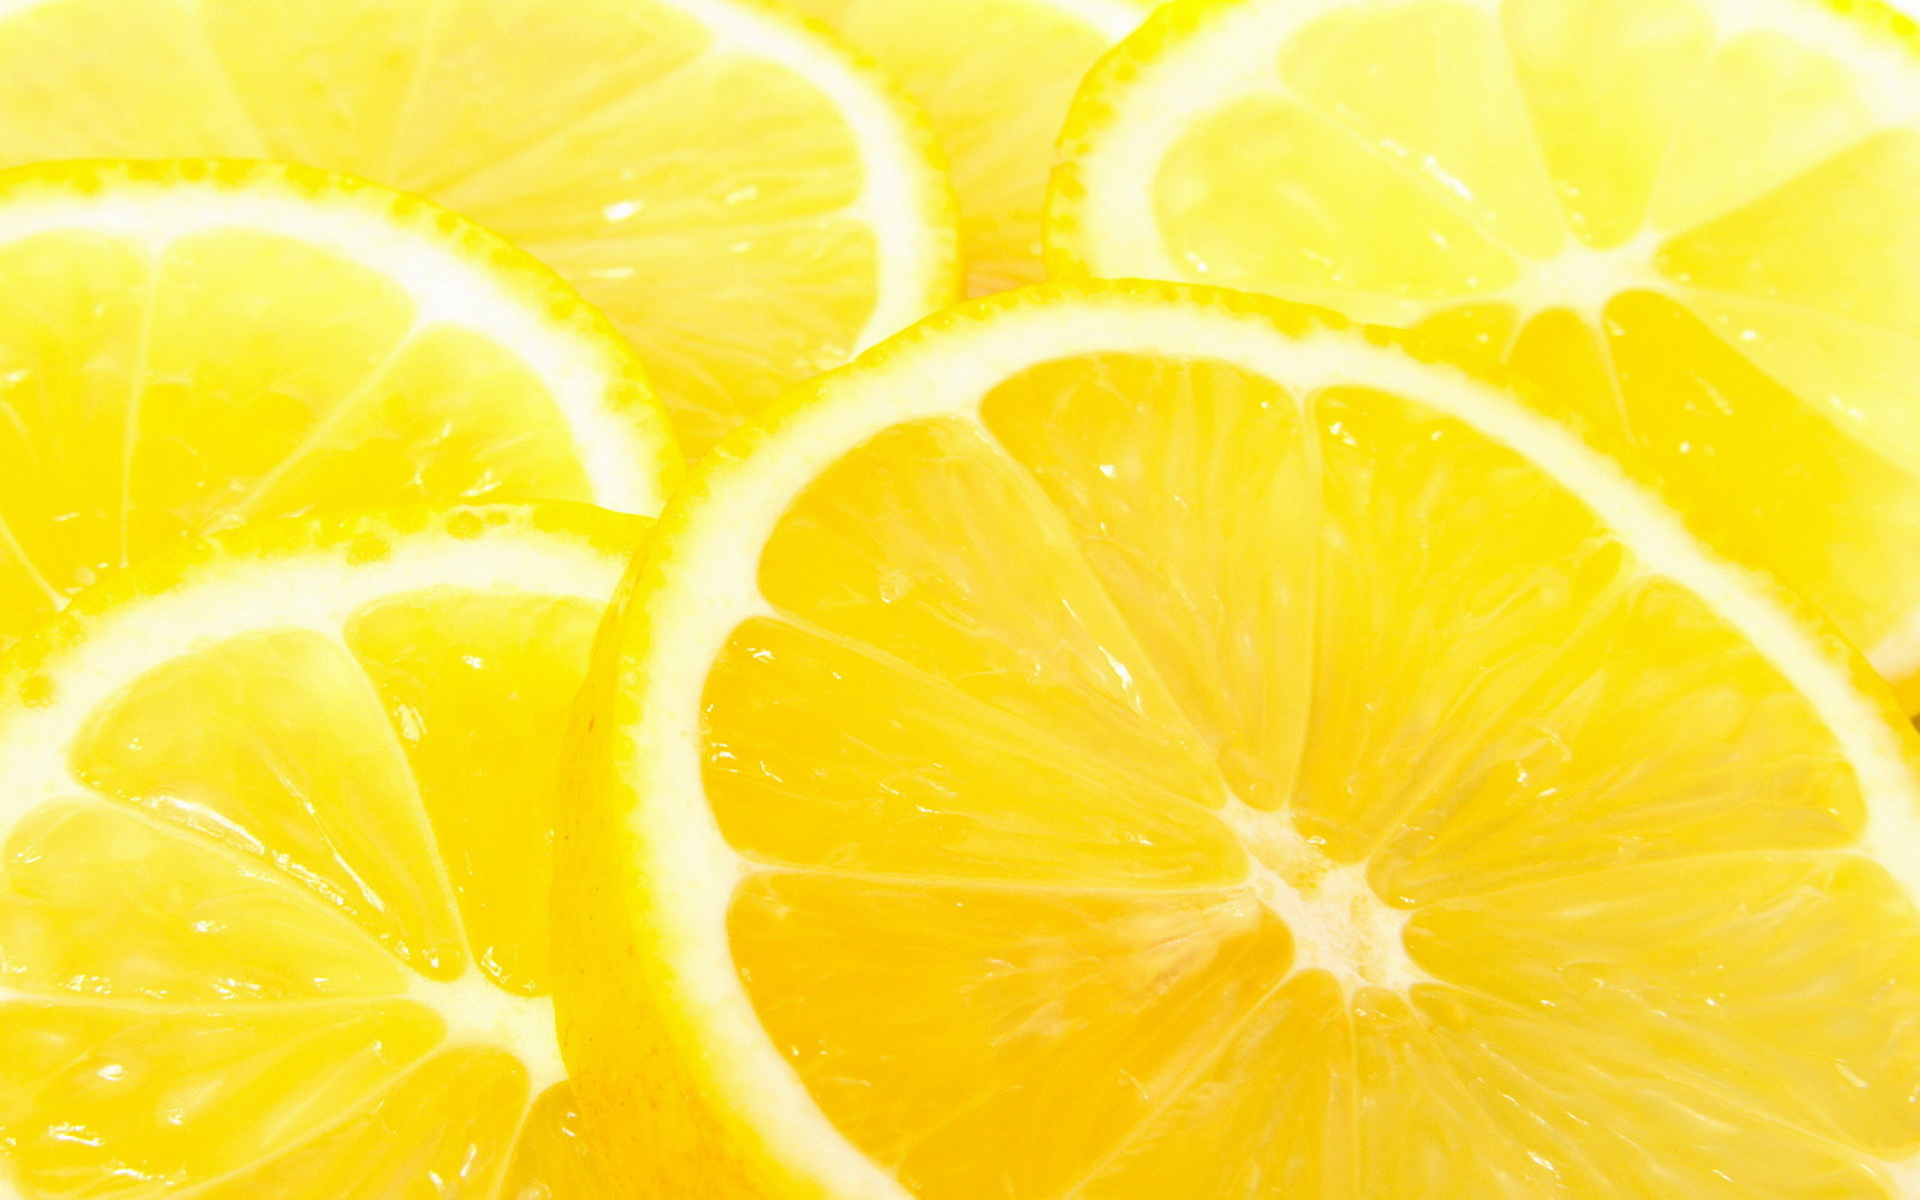 Lemon Wallpapers